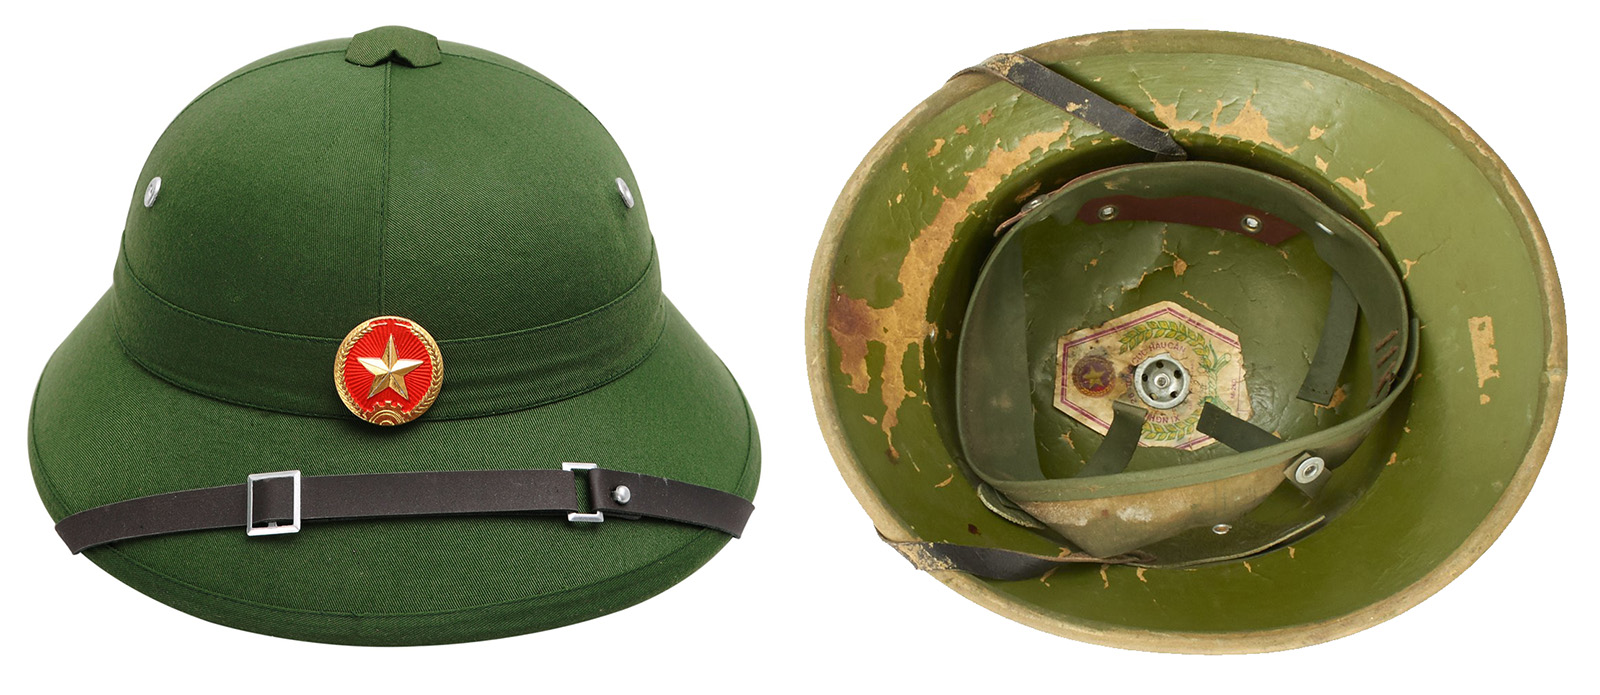 pavn_tropical_helmet.jpg